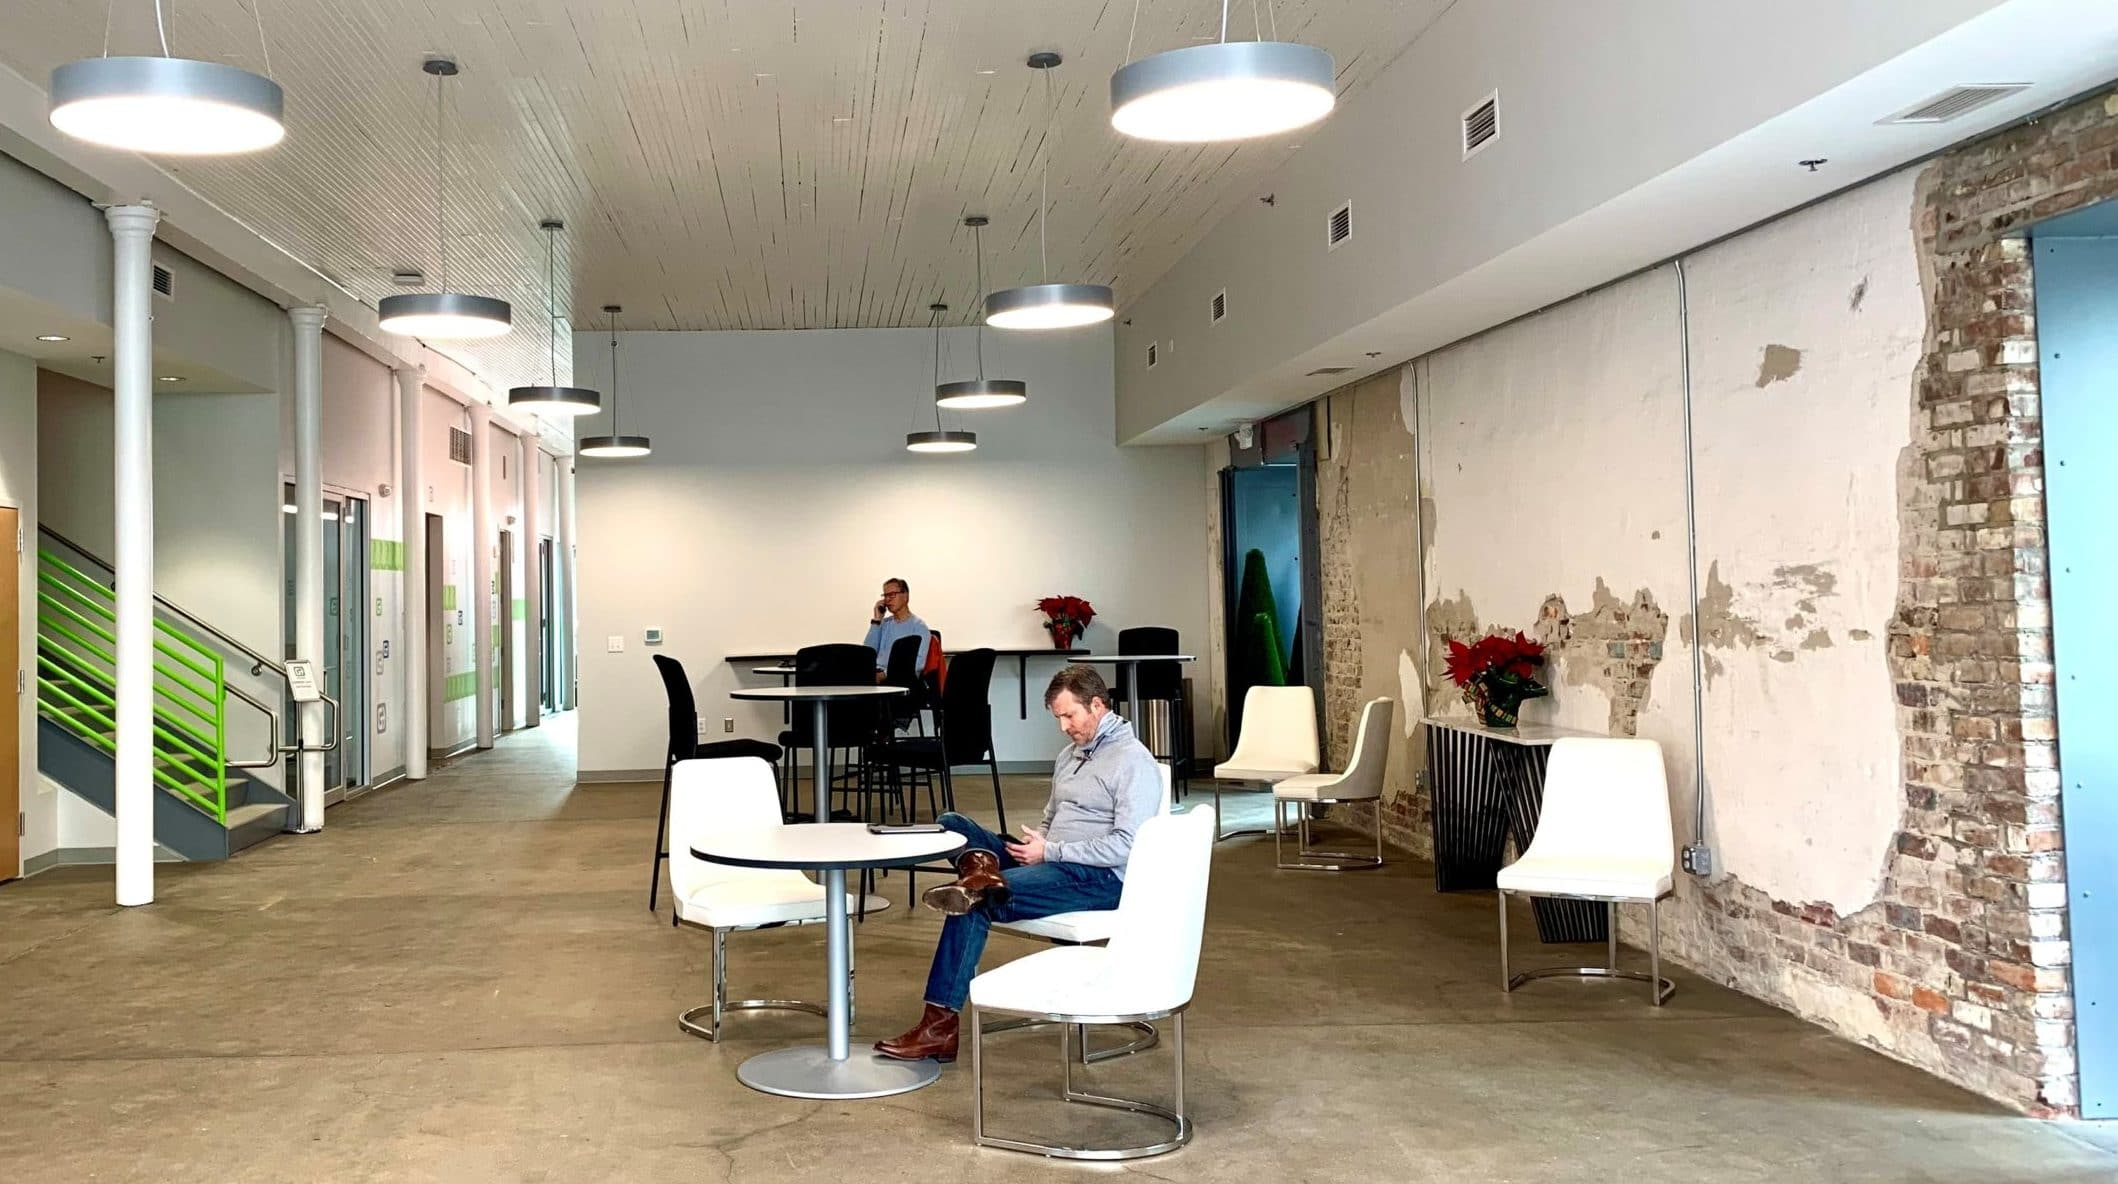 City of Wilson sparks innovation and entrepreneurship with dedicated workspace